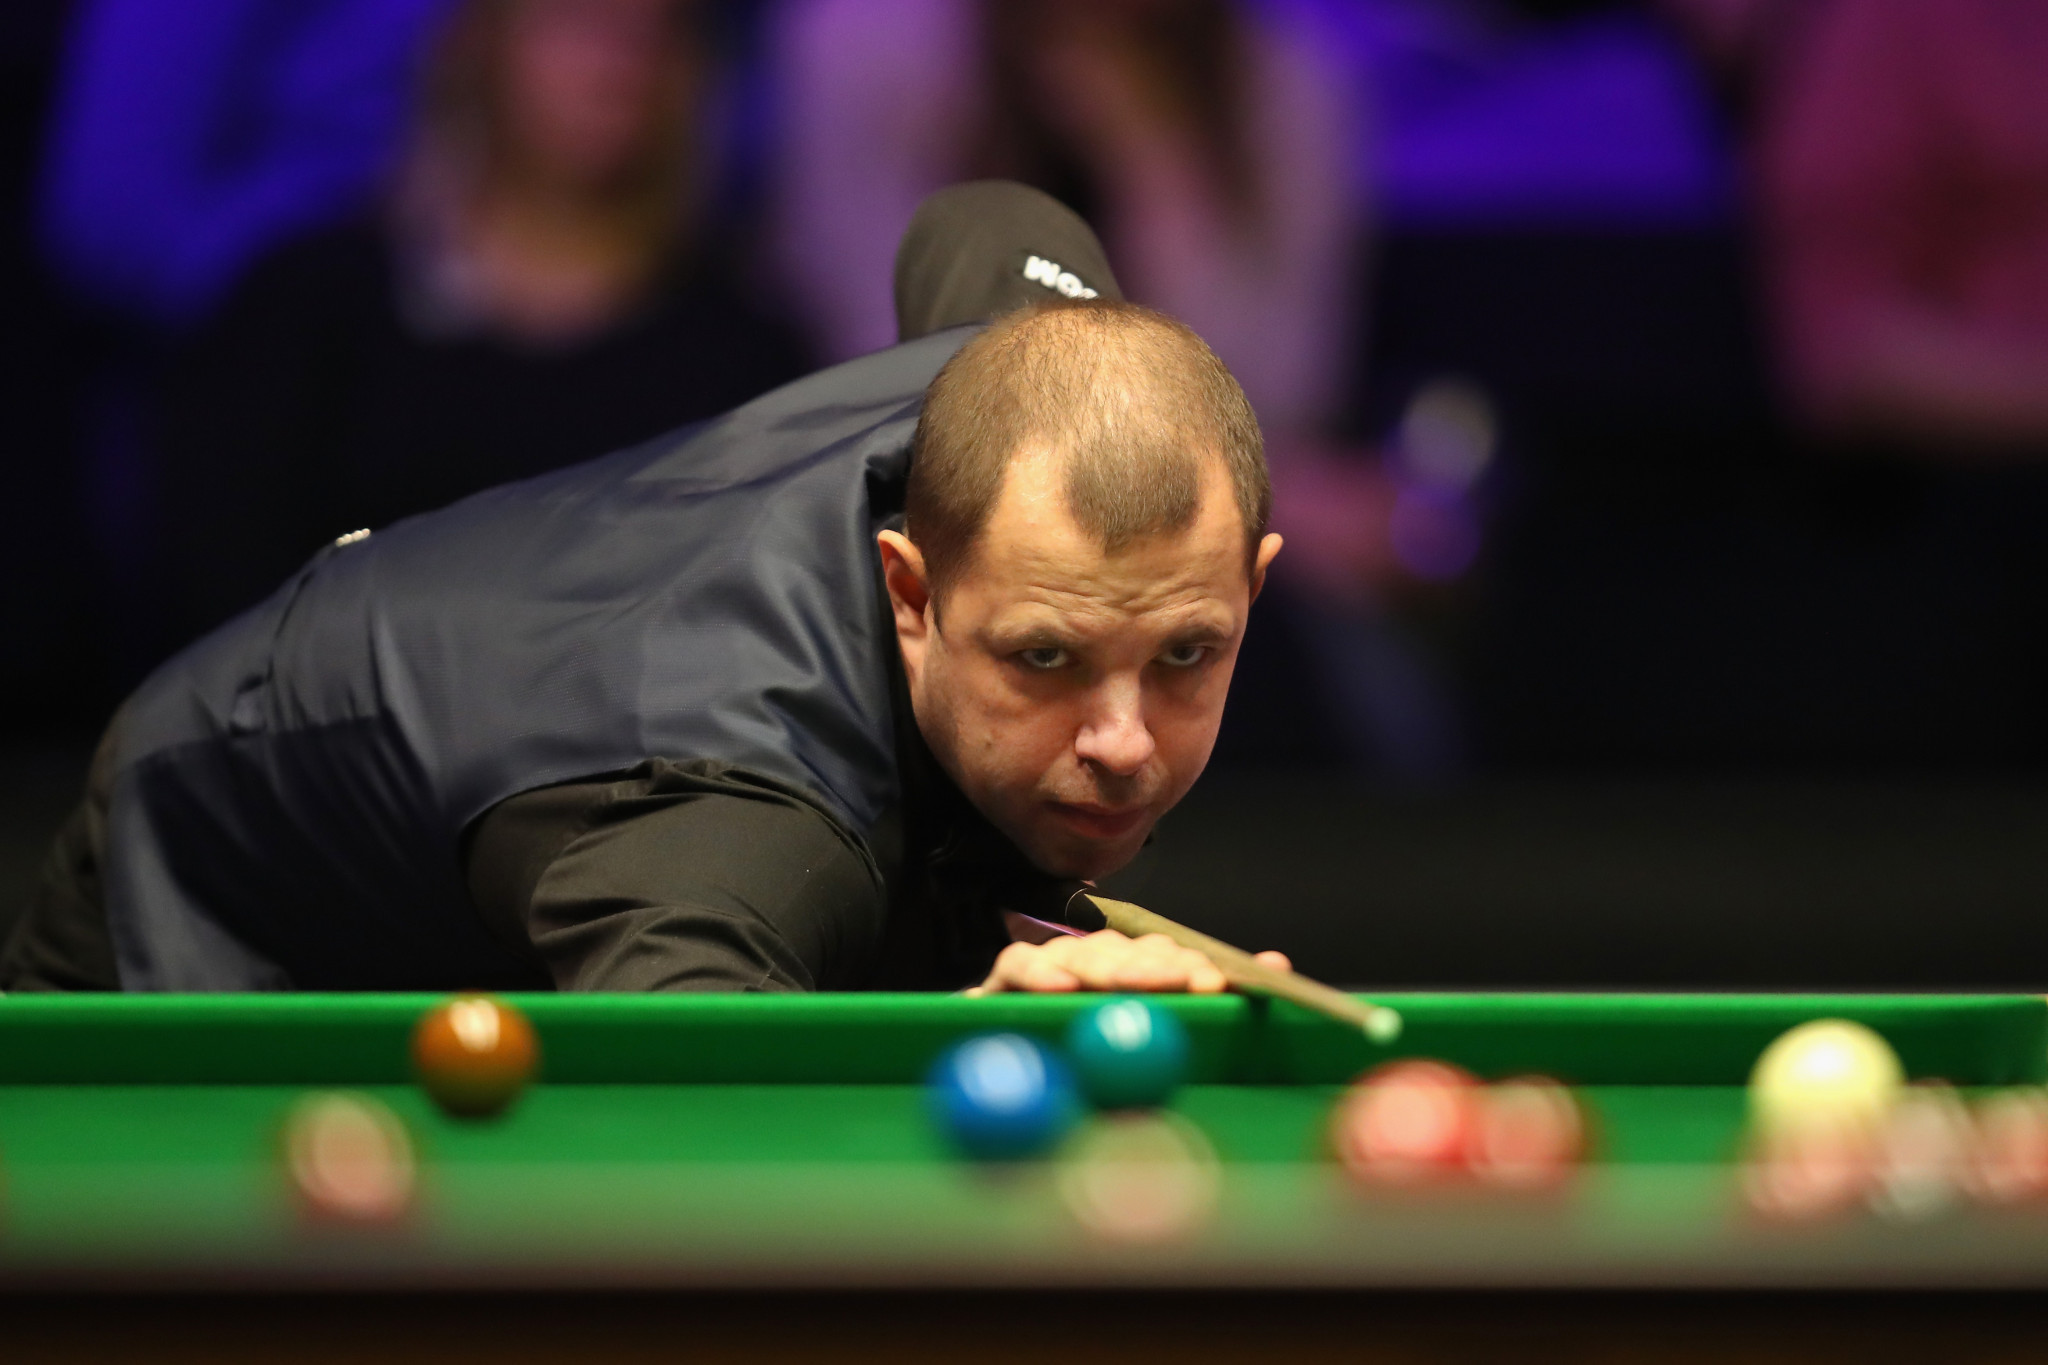 Barry Hawkins reached the World Snooker Championship final in 2013 ©Getty Images